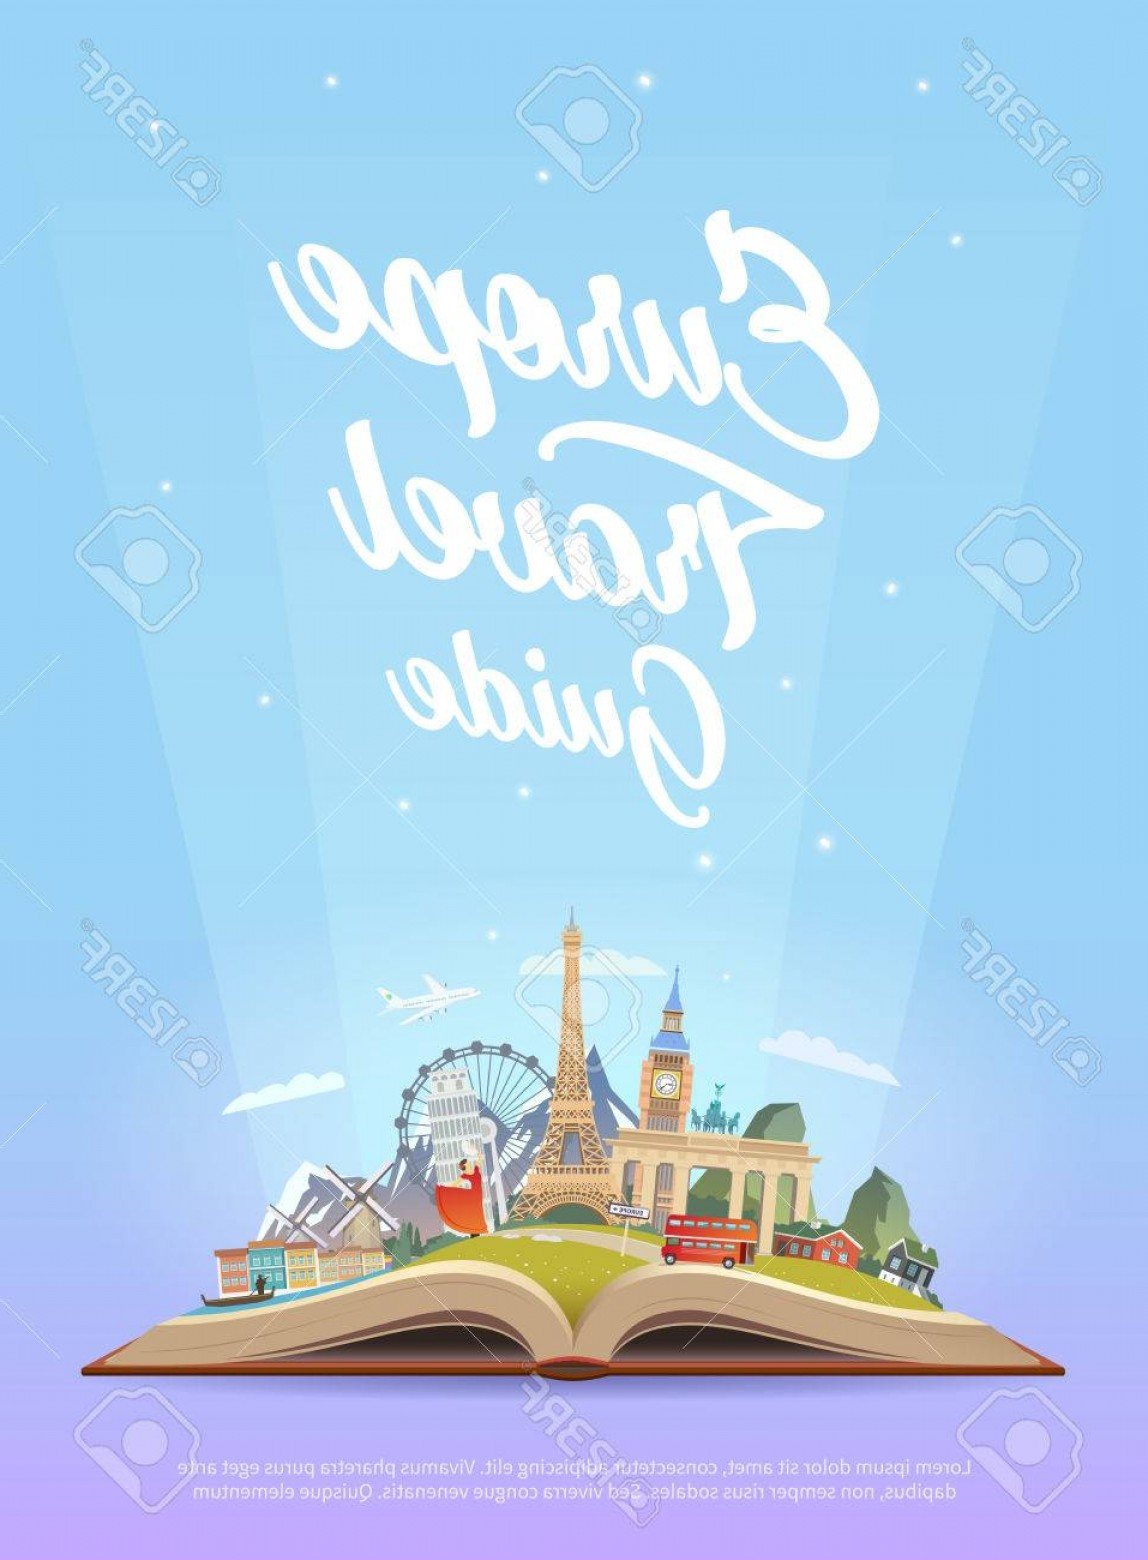 Open Book Vector Flat: Photostock Vector Travel To Europe Road Trip Tourism Open Book With Landmarks Europe Travel Guide Advertising Web Illu